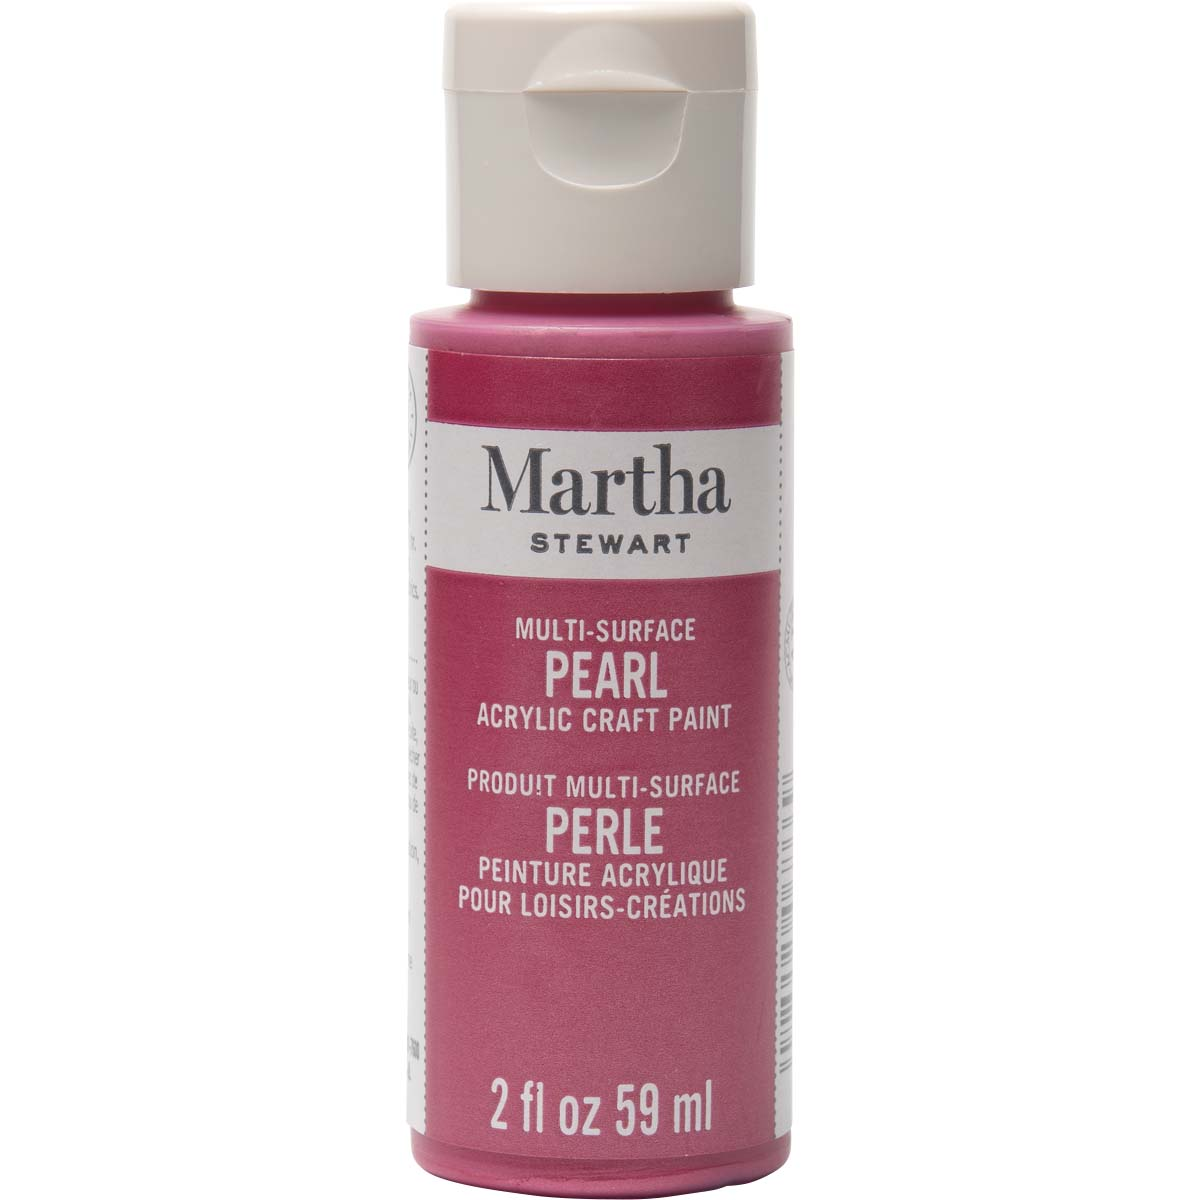 Martha Stewart ® Multi-Surface Pearl Acrylic Craft Paint - Fruit Punch, 2 oz. - 32115CA